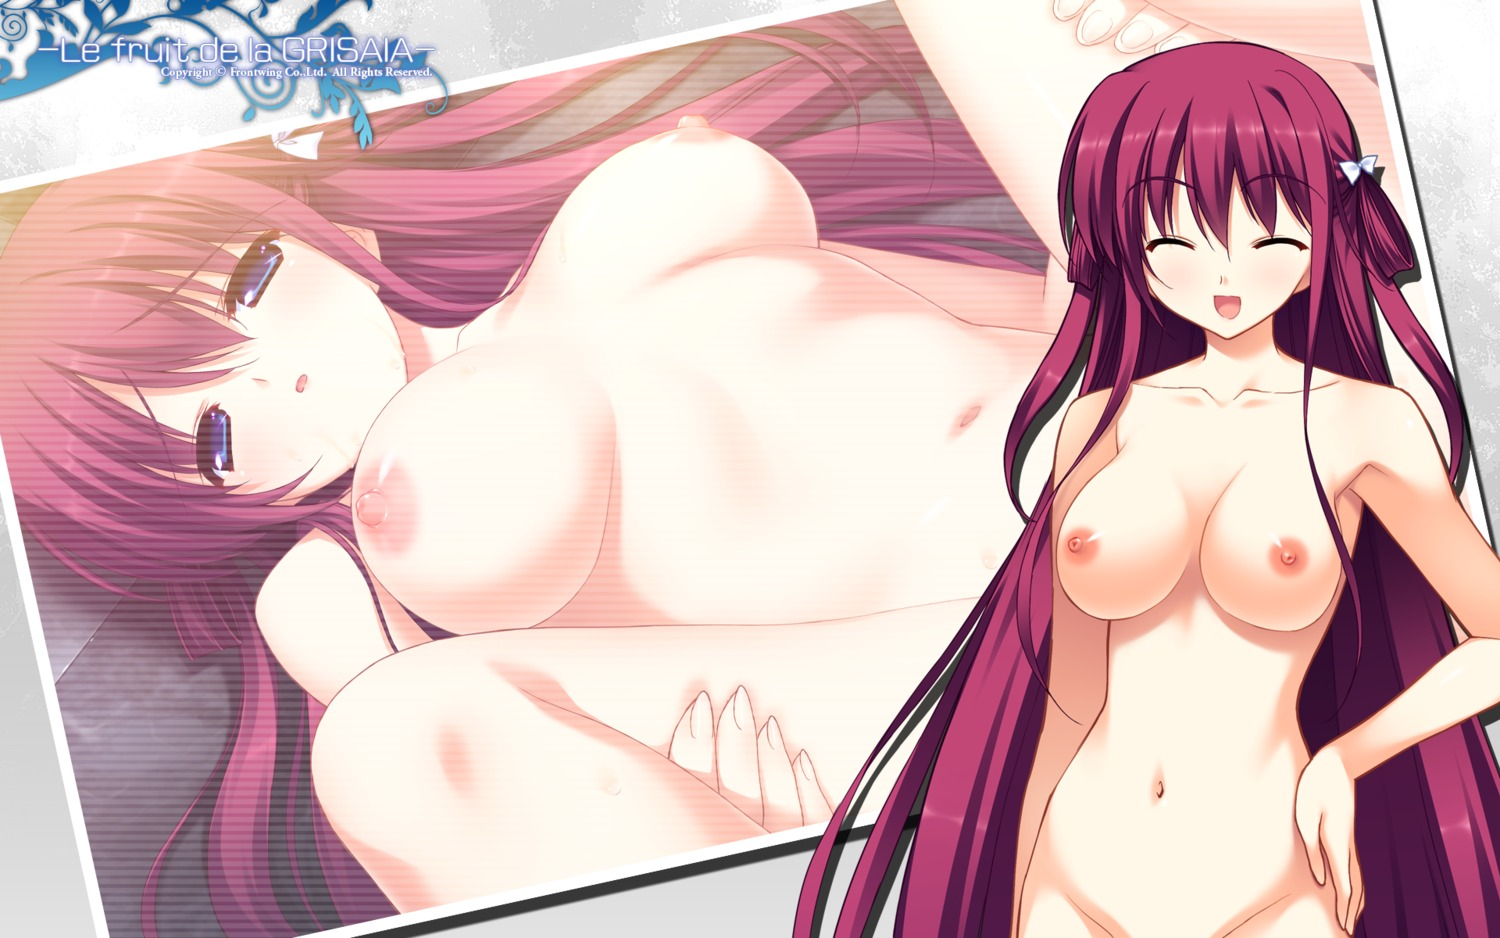 front_wing fumio grisaia_no_kajitsu naked nipples suou_amane wallpaper